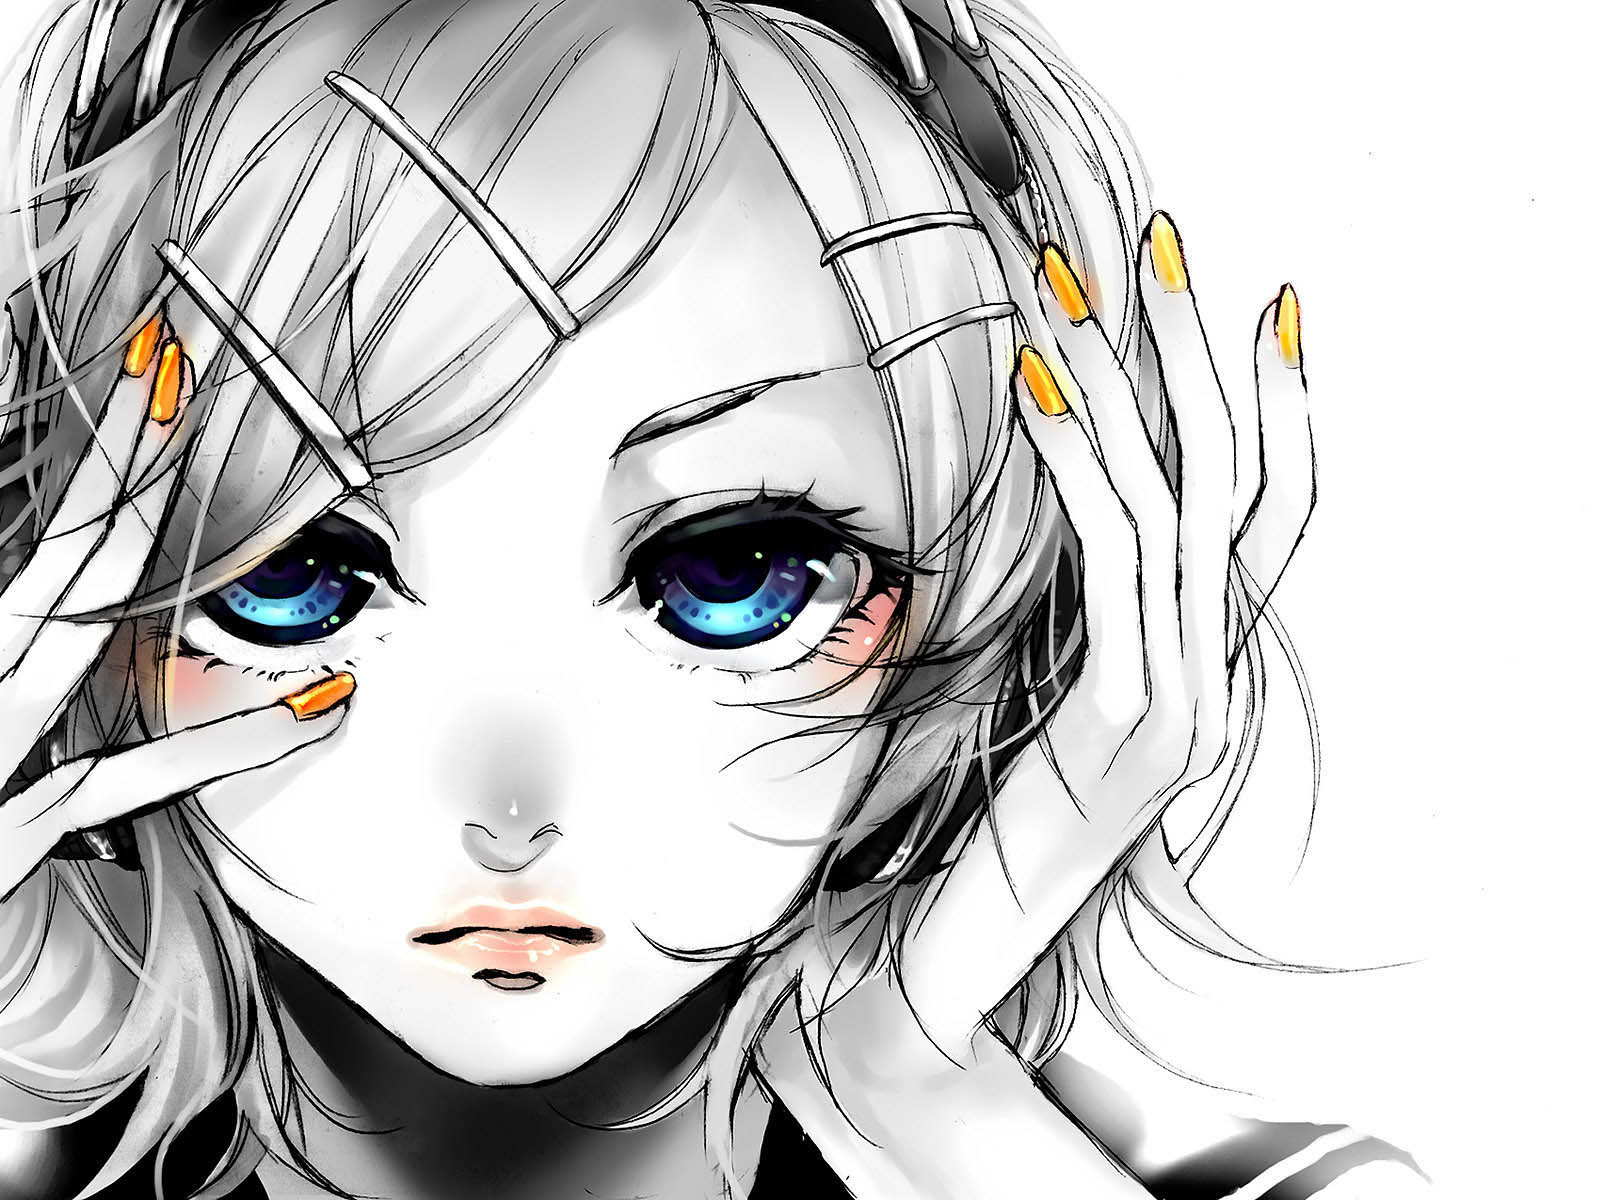 Wallpapers anime girl wallpapers - Anime face wallpaper ...